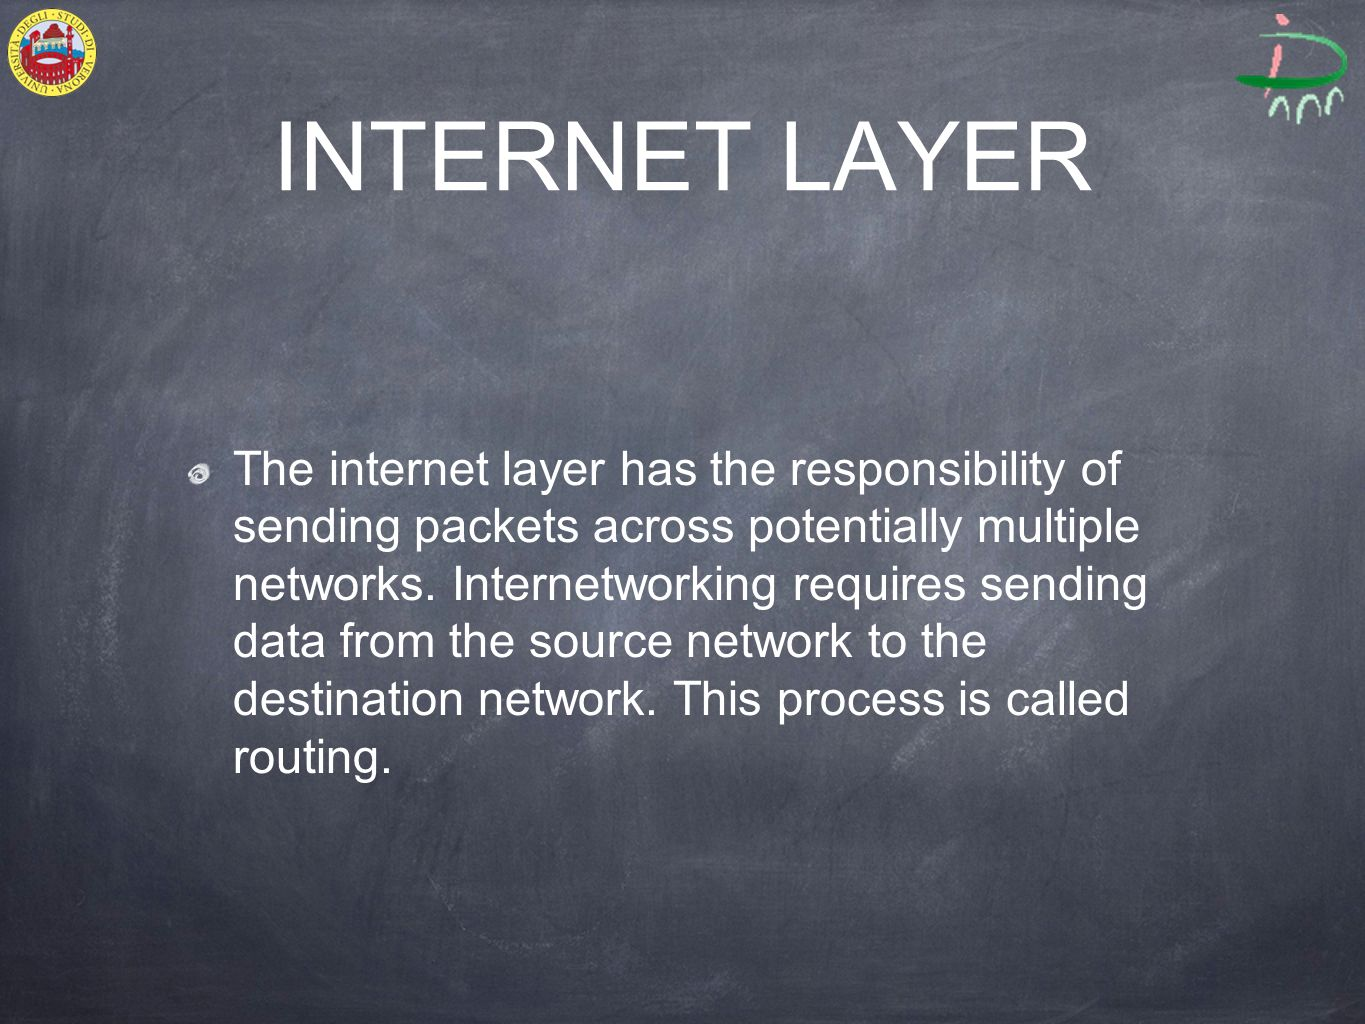 INTERNET LAYER The internet layer has the responsibility of sending packets across potentially multiple networks.